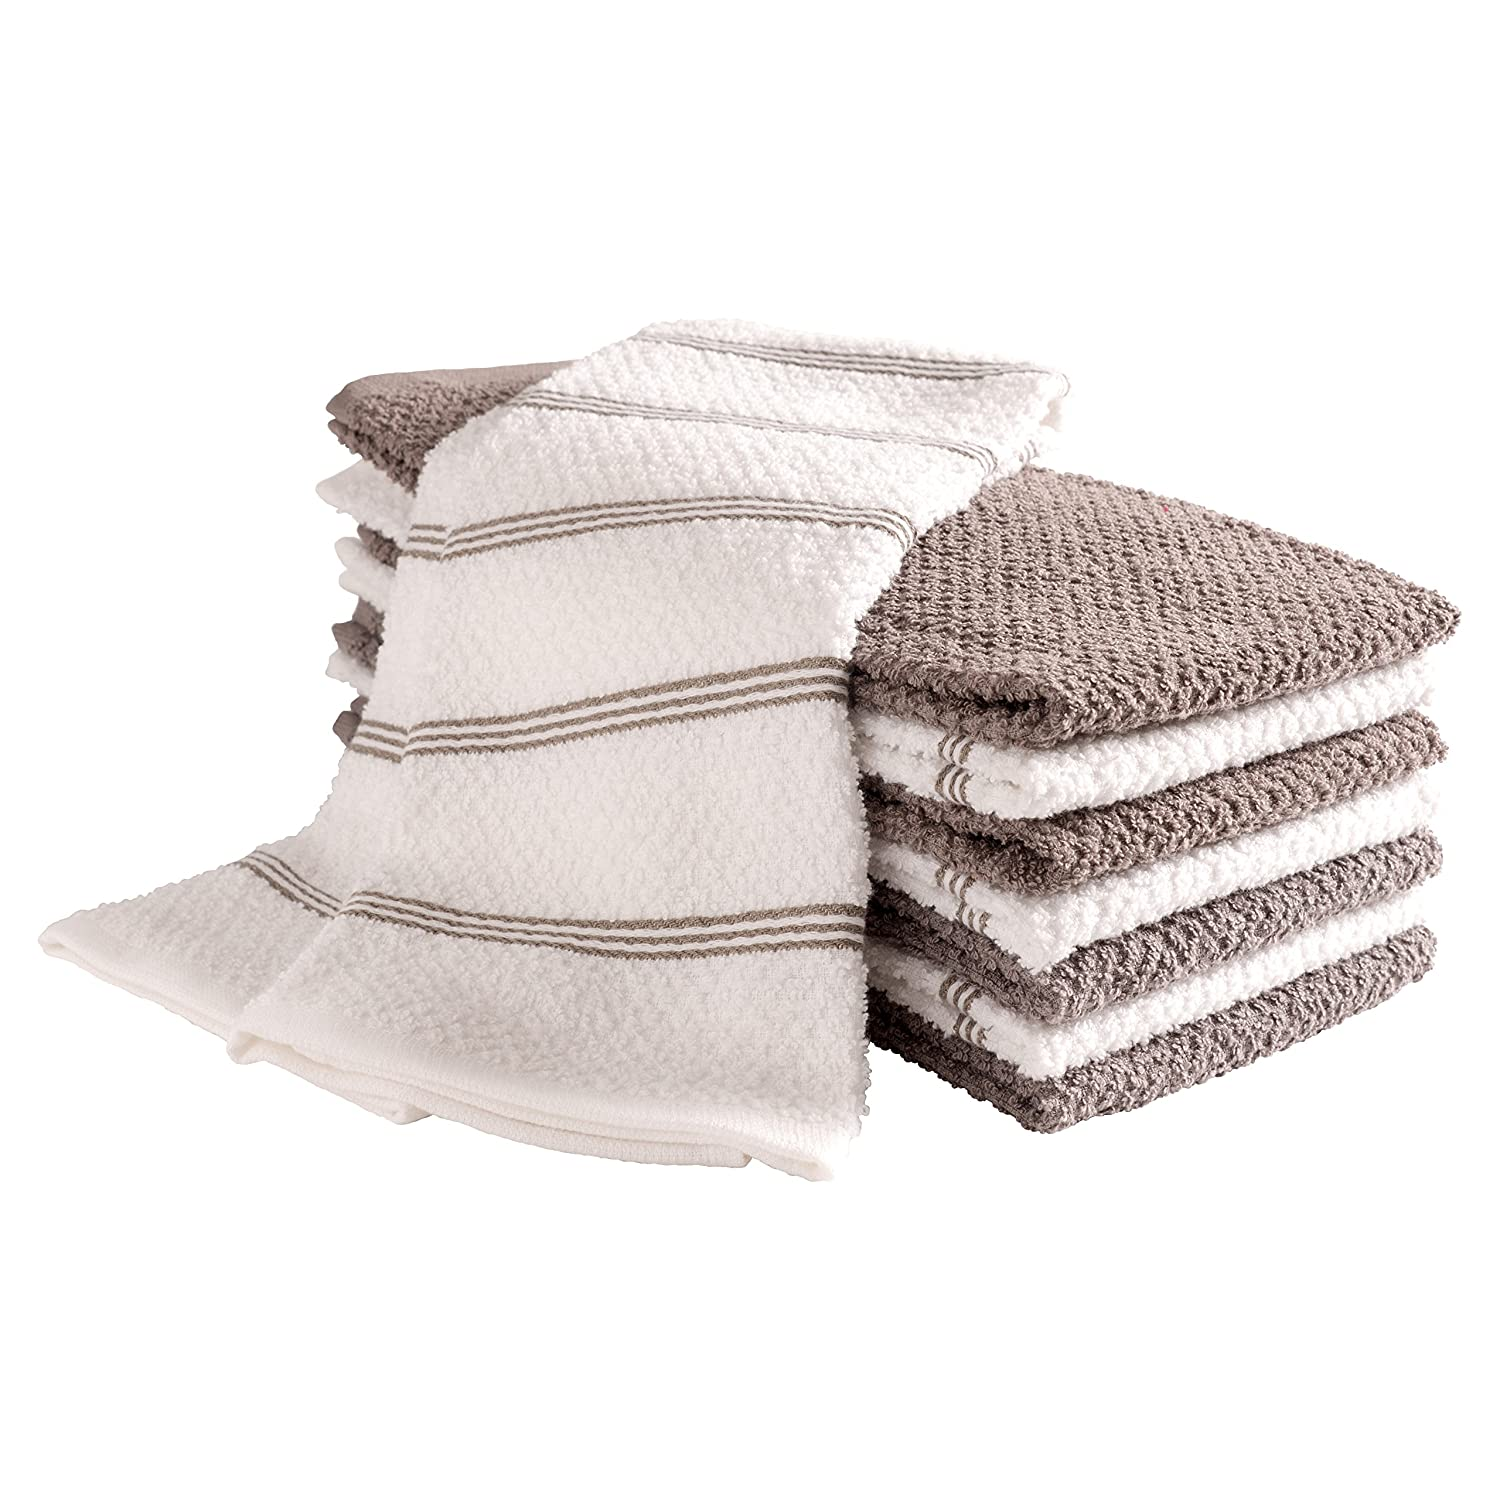 KAF Home Pantry Piedmont Kitchen Towels (Two Sets of 4, 16x26 inches), 100% Cotton, Ultra Absorbent Terry Towels - Dark Grey